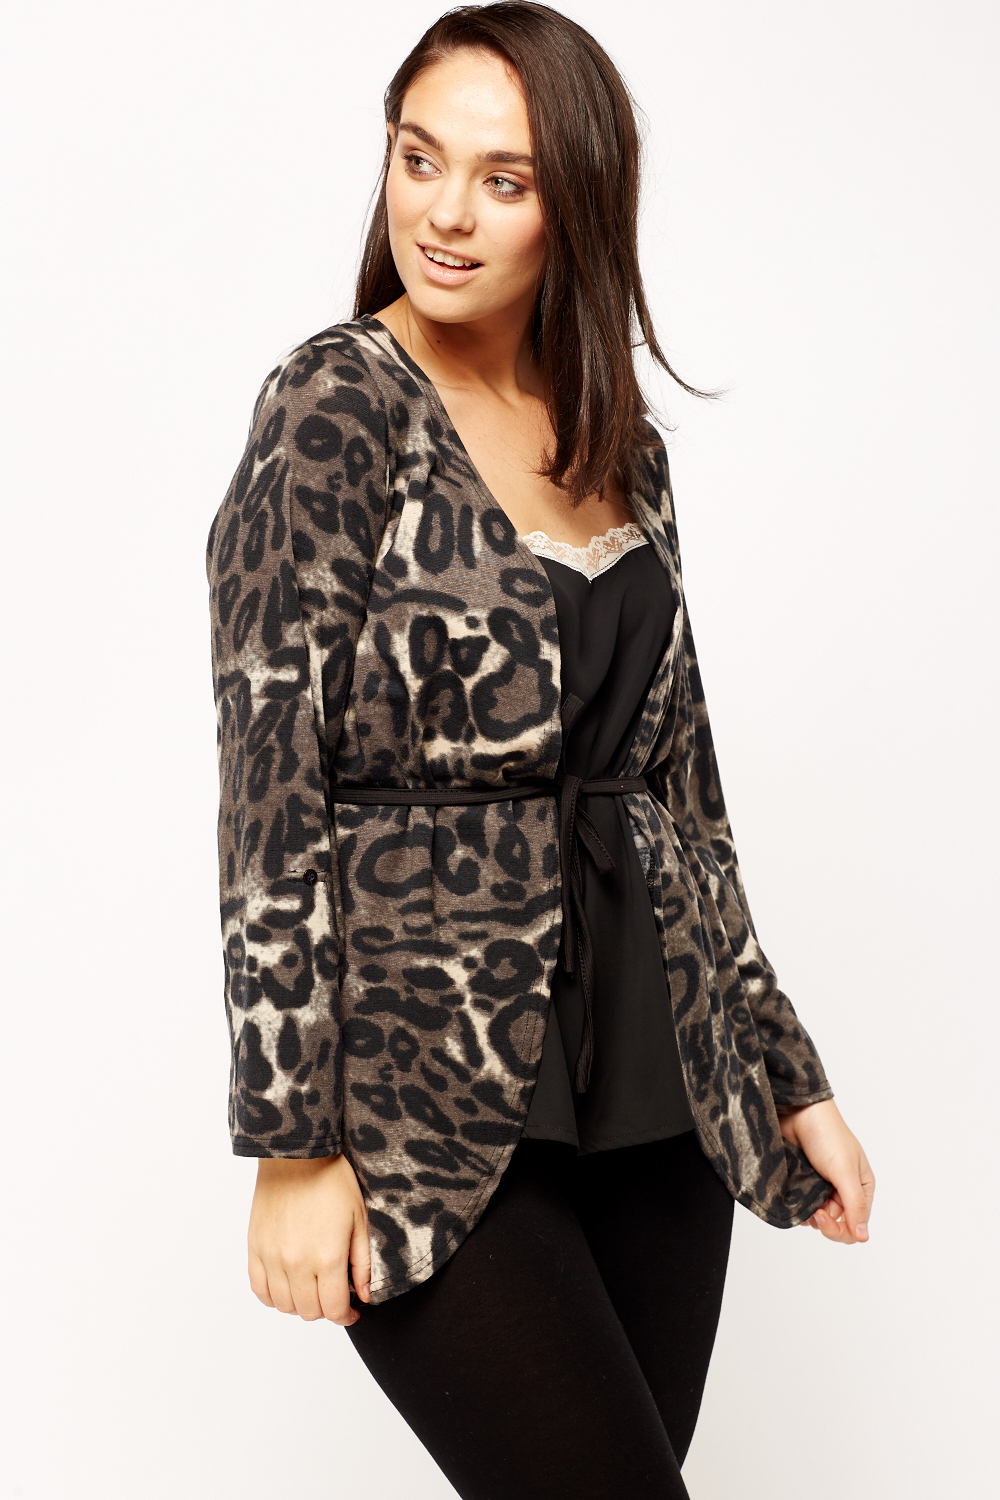 Animal Print Soft Touch Cardigan - Just £5